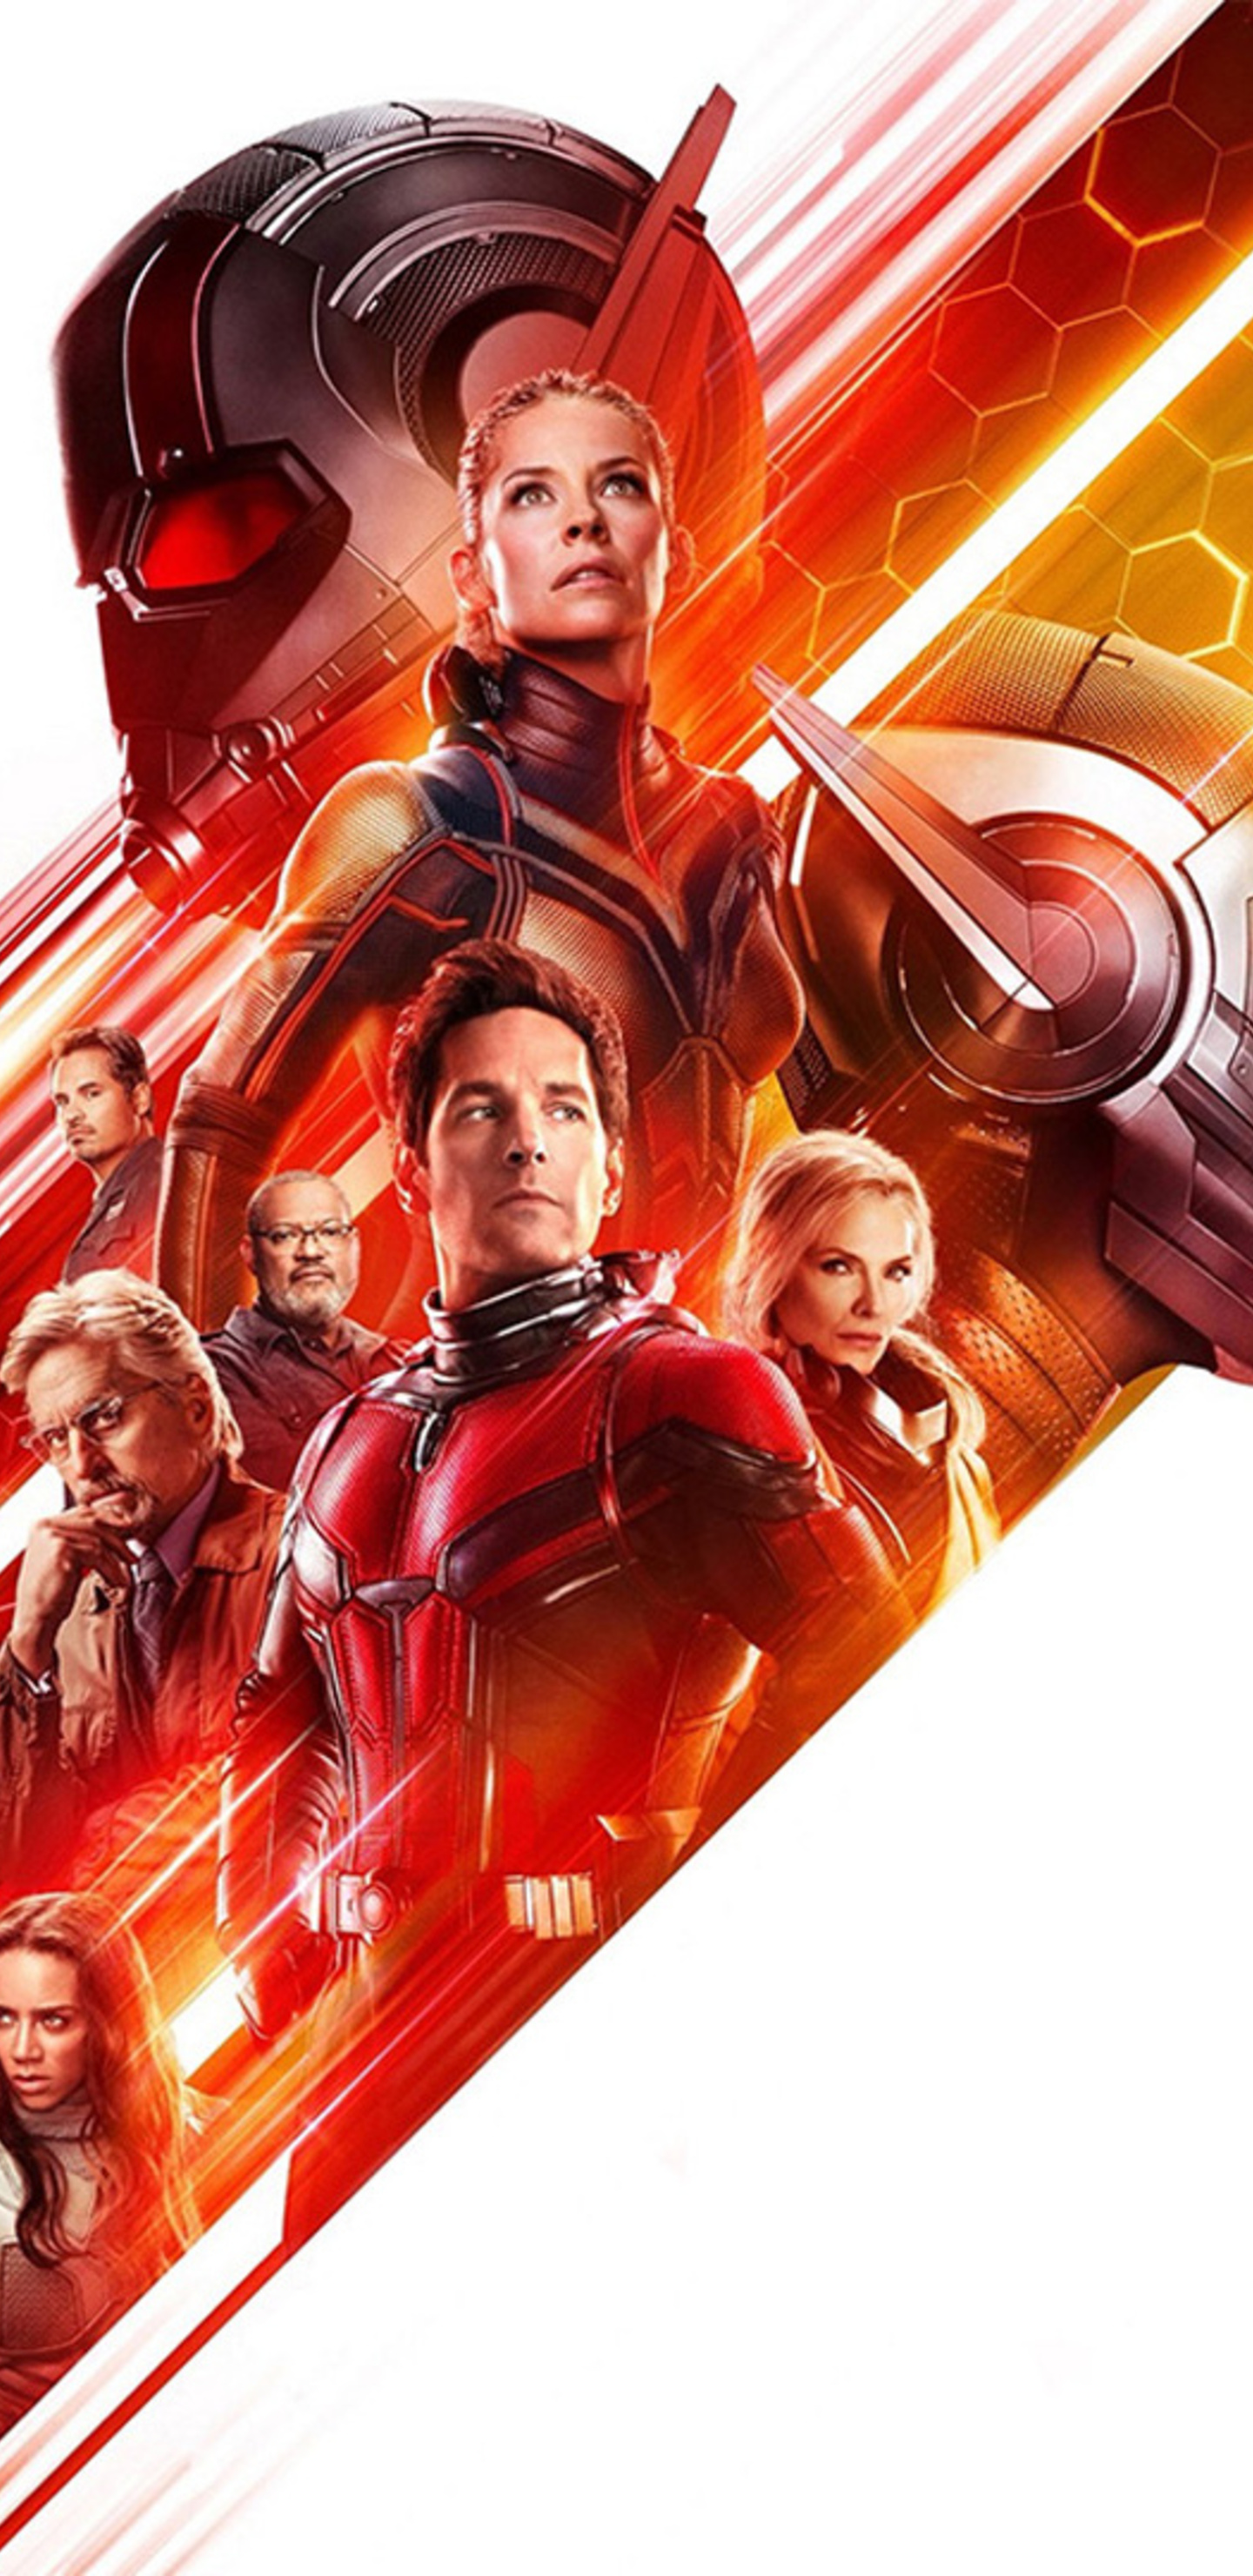 1440x2960 Ant Man And The Wasp Movie 2018 Poster Samsung ...